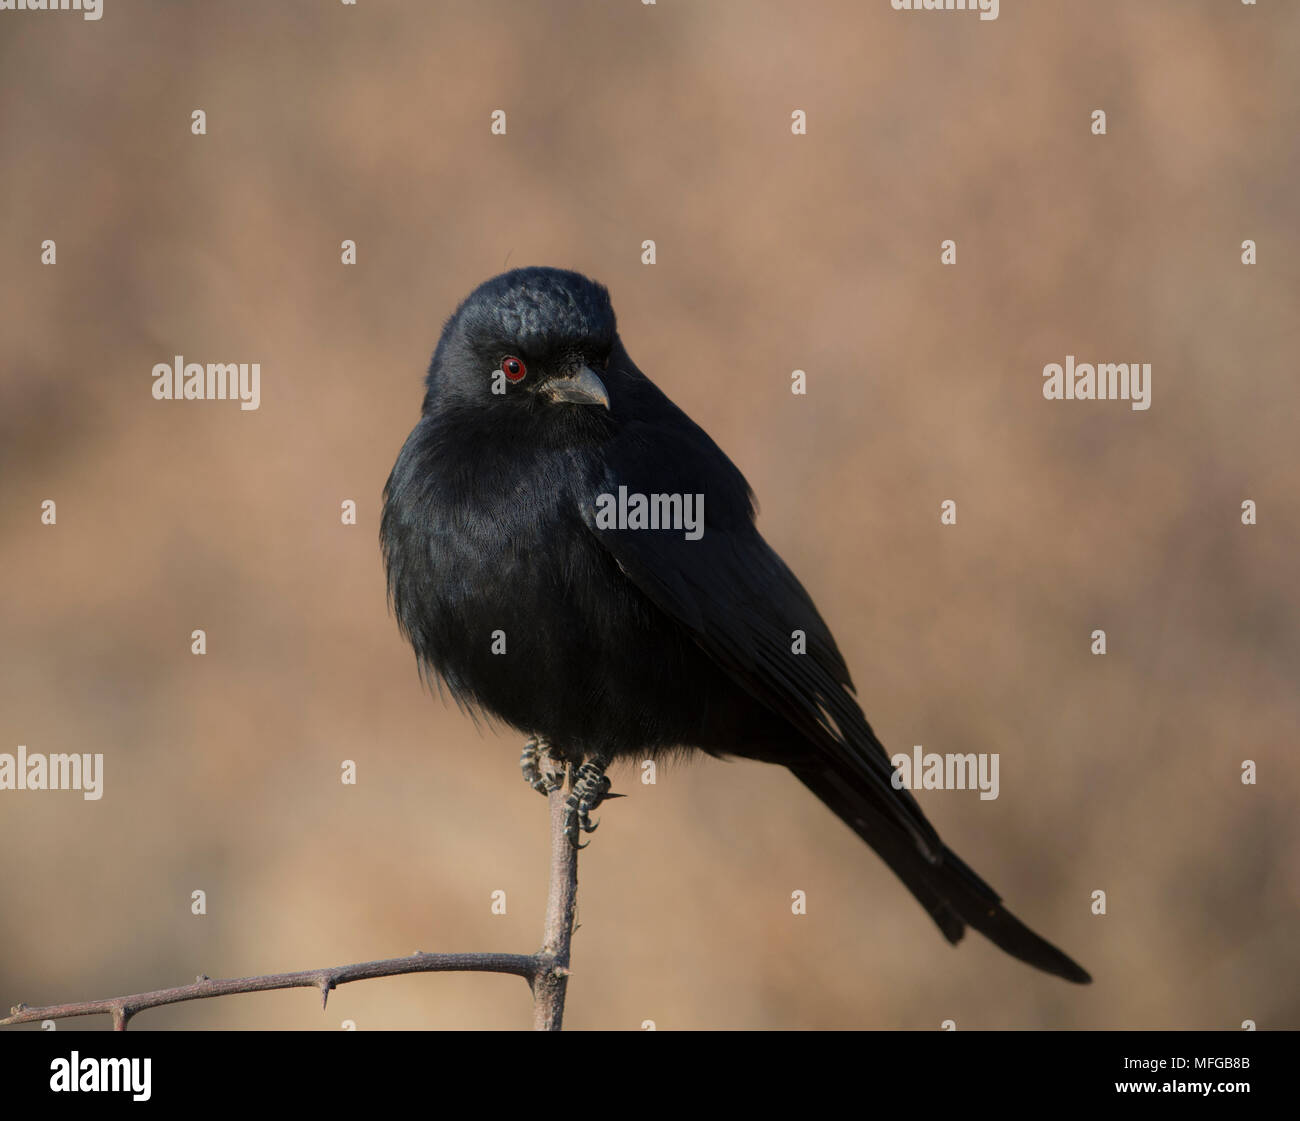 Drongo with red eyes in South Africa - Stock Image